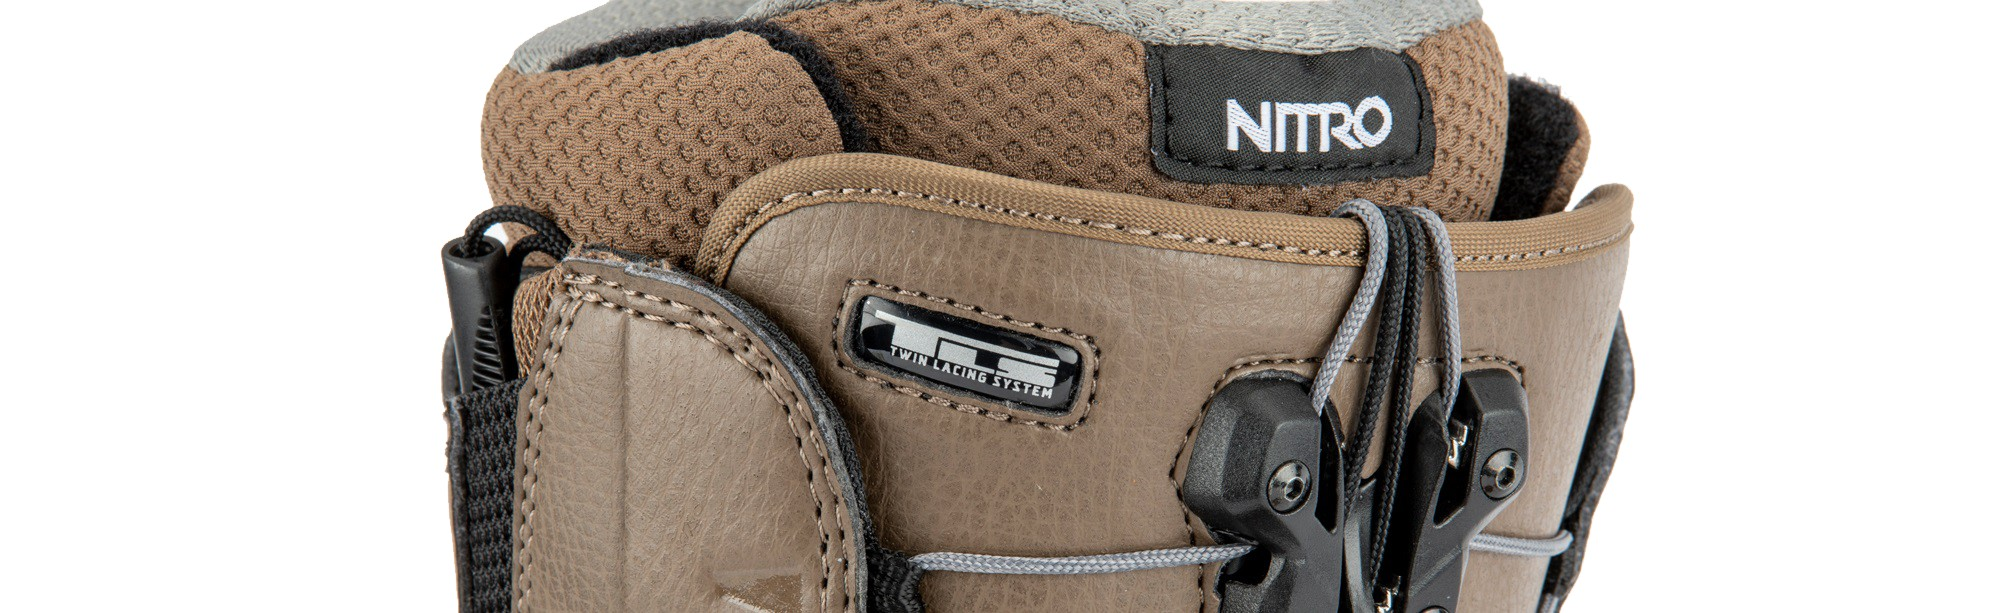 Nitro-Venture-Pro-TLS-Two-Tone-Brown-Detail-2